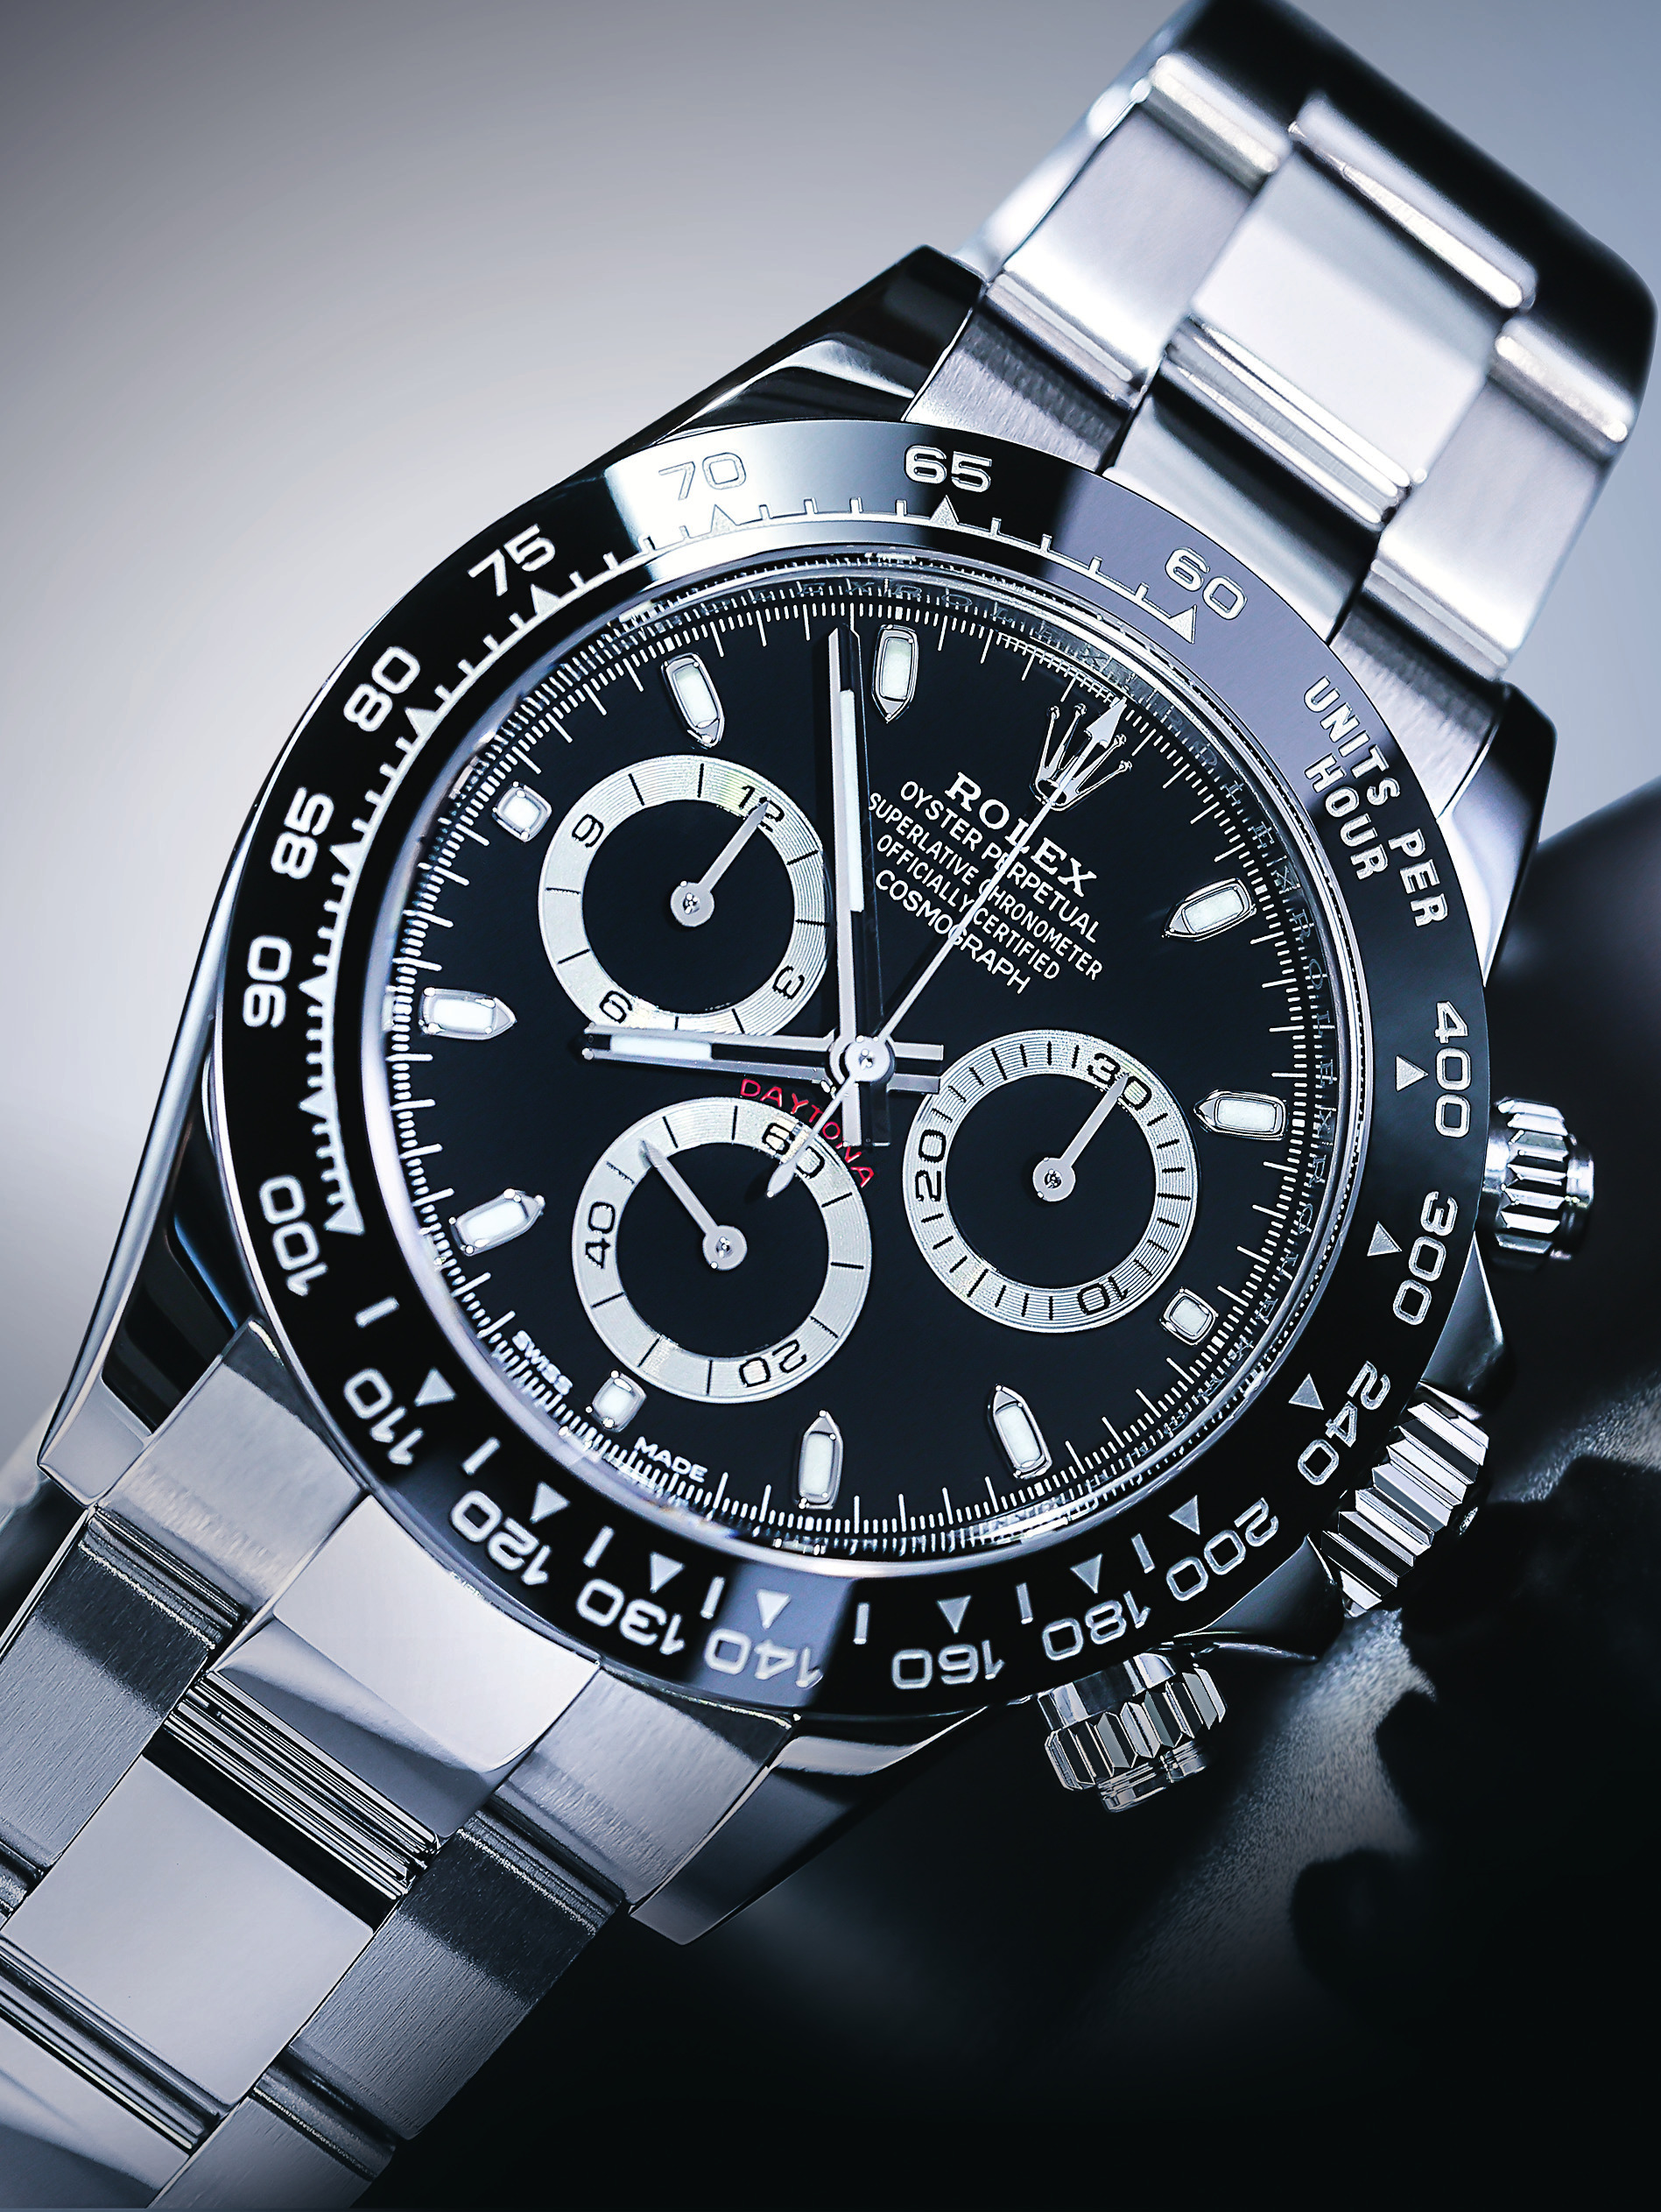 355deebd6871 ROLEX OYSTER PERPETUAL COSMOGRAPH DAYTONA - WatchTime India